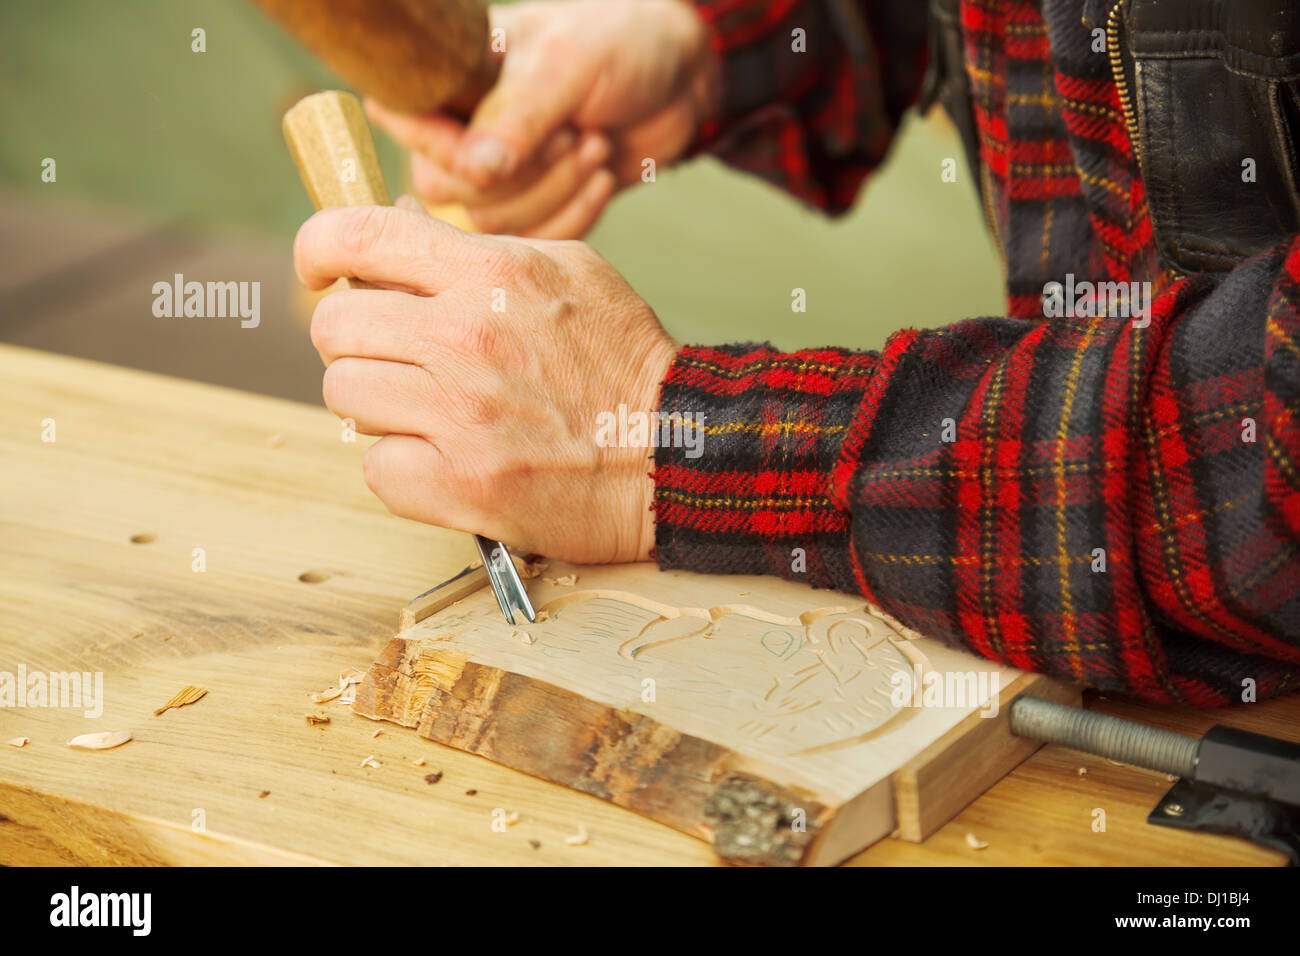 Popular art: wood carving by hand - Stock Image